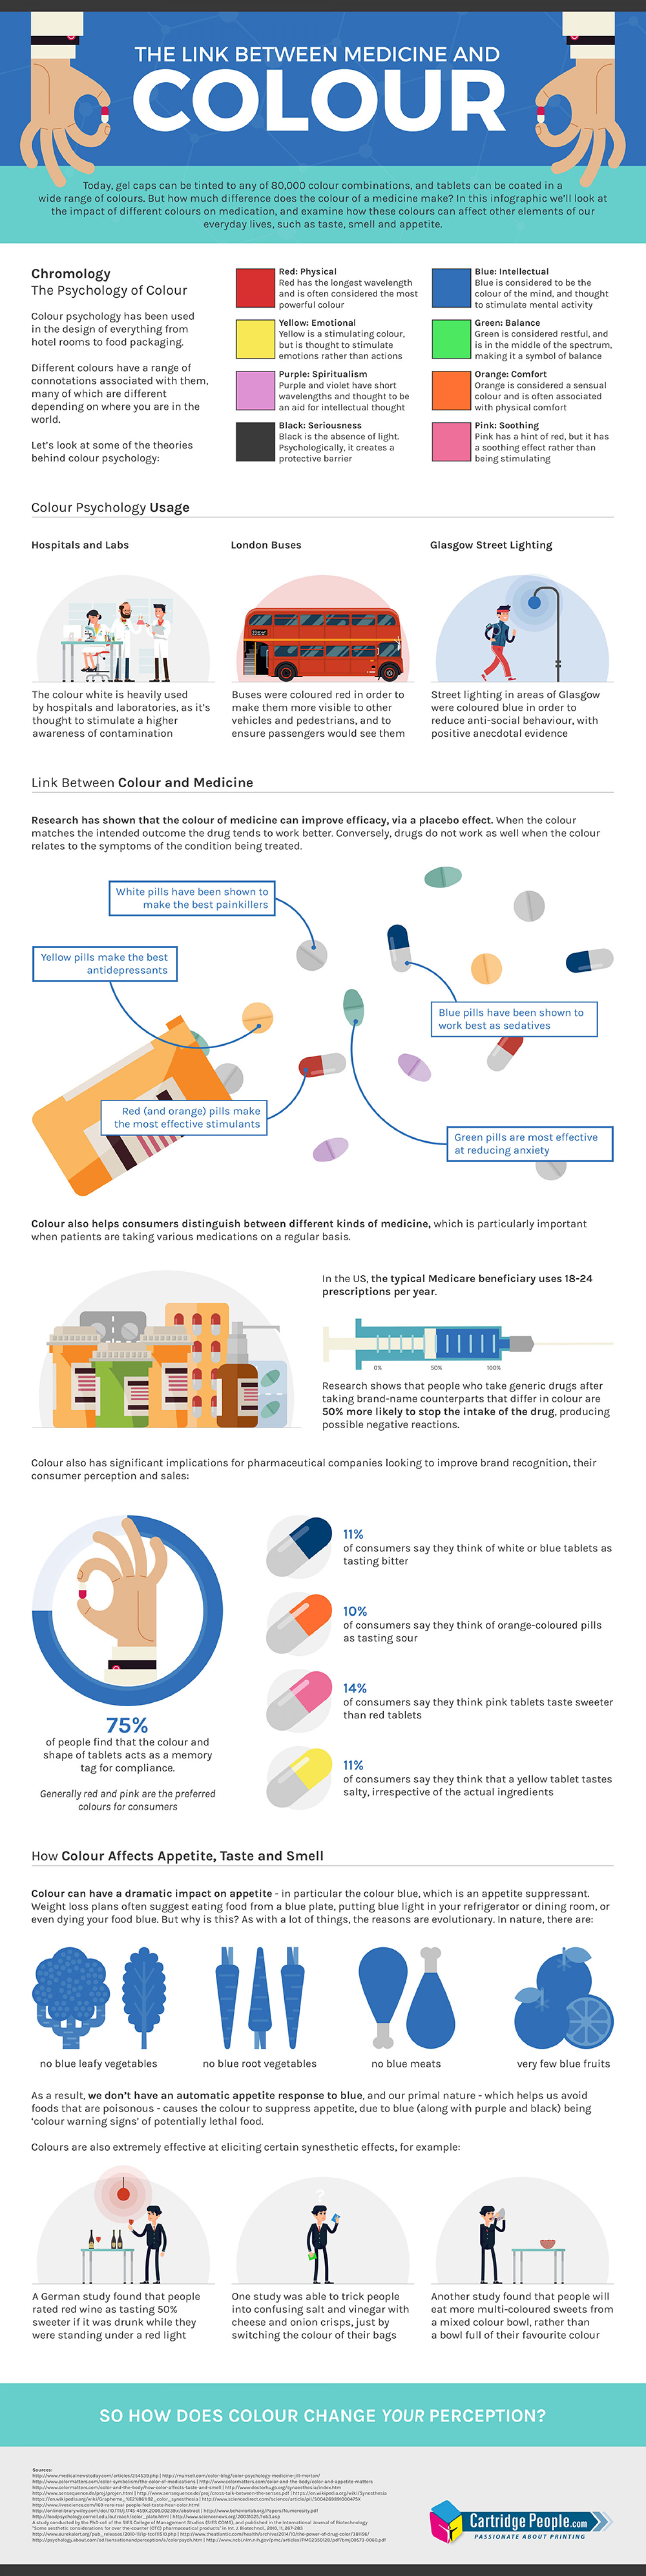 The Link Between Colour and Medicine Infographic